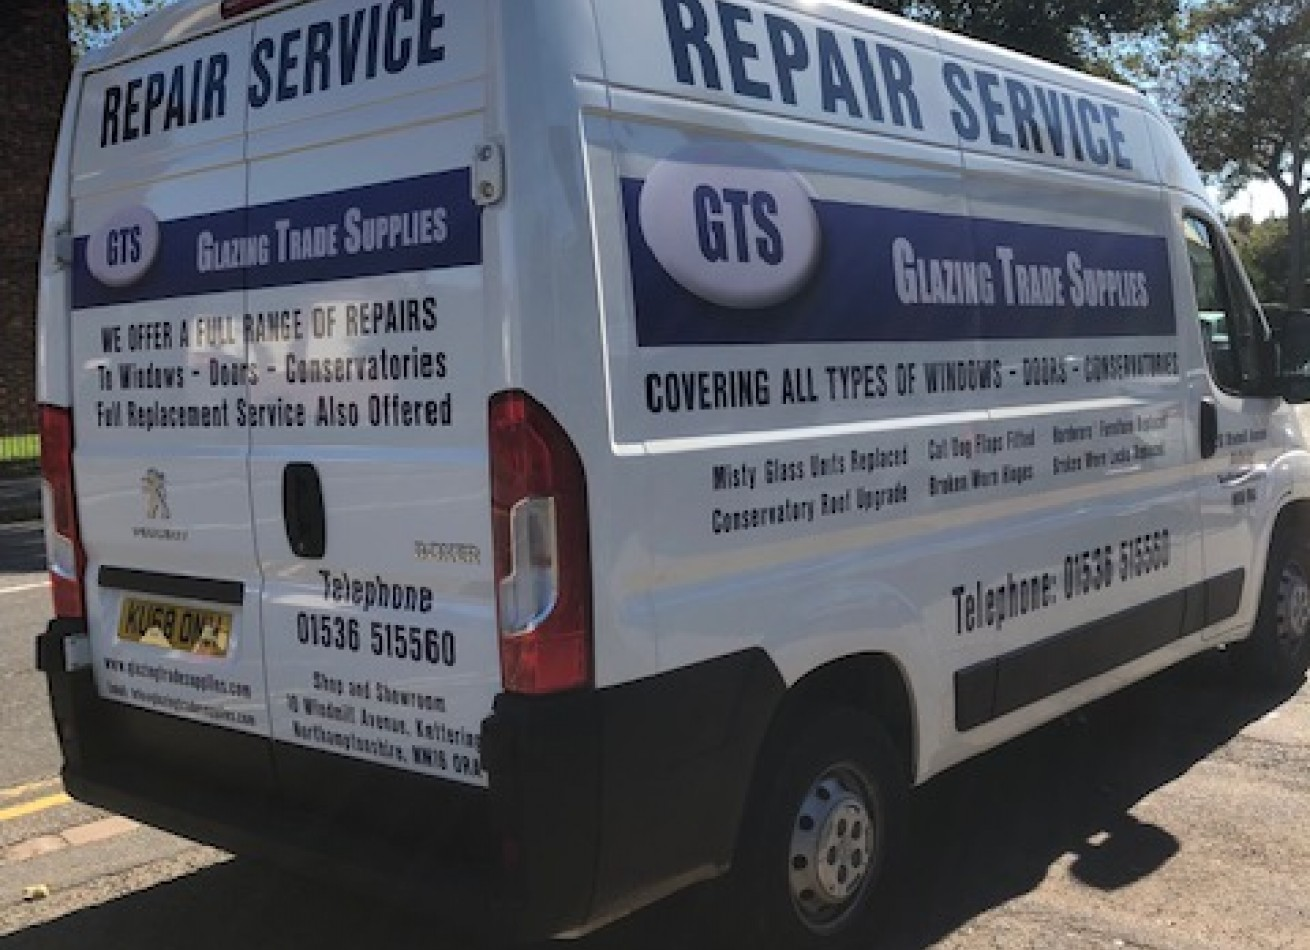 New Double glazing repair van on the road